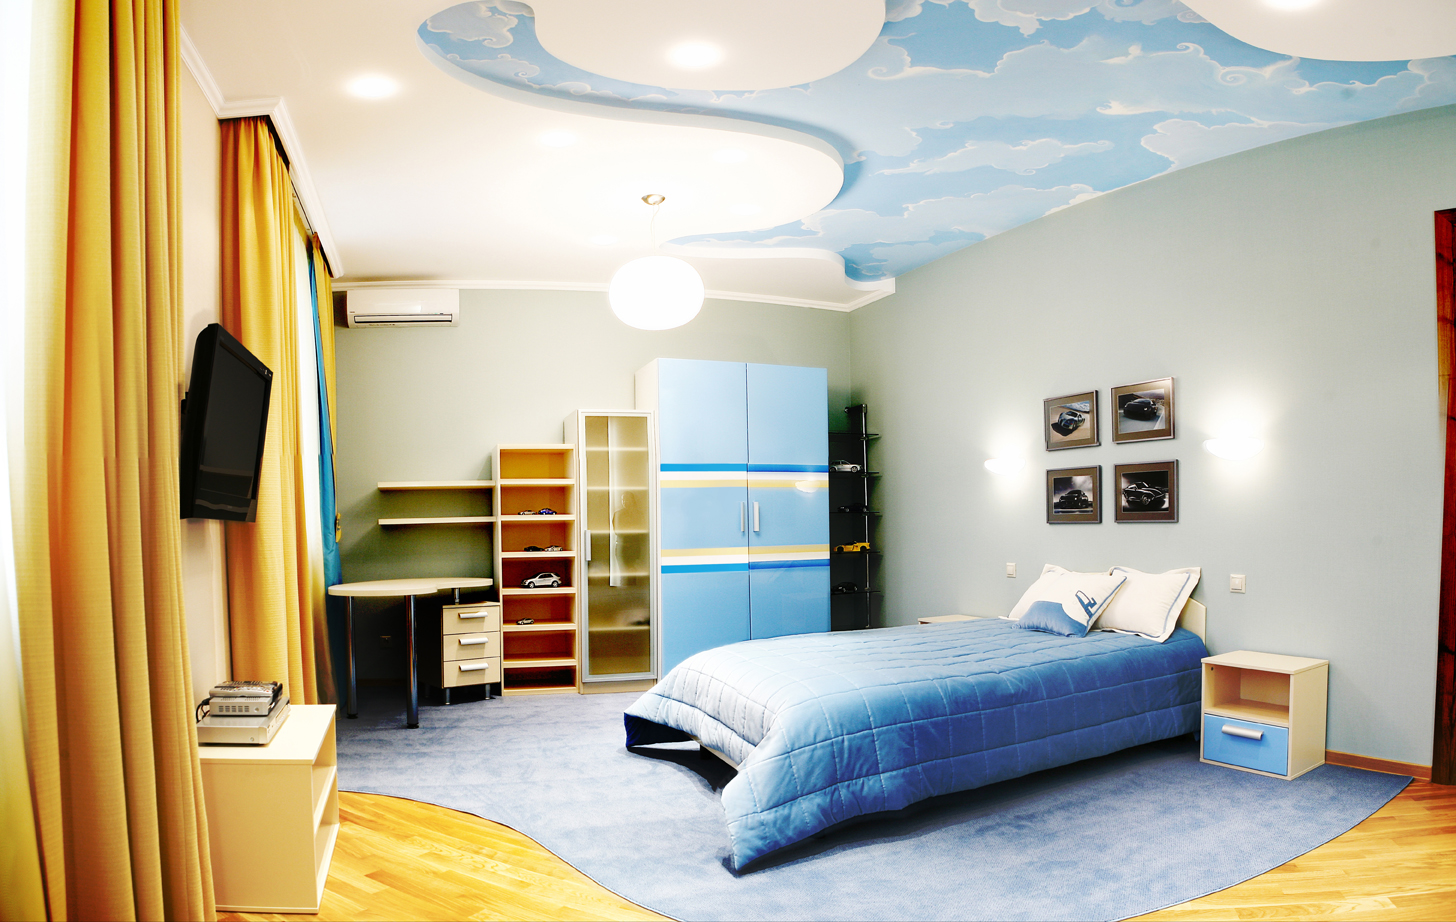 Totally Kids Totally Bedrooms: 5 Totally Smart Kids' Rooms Organization Tips